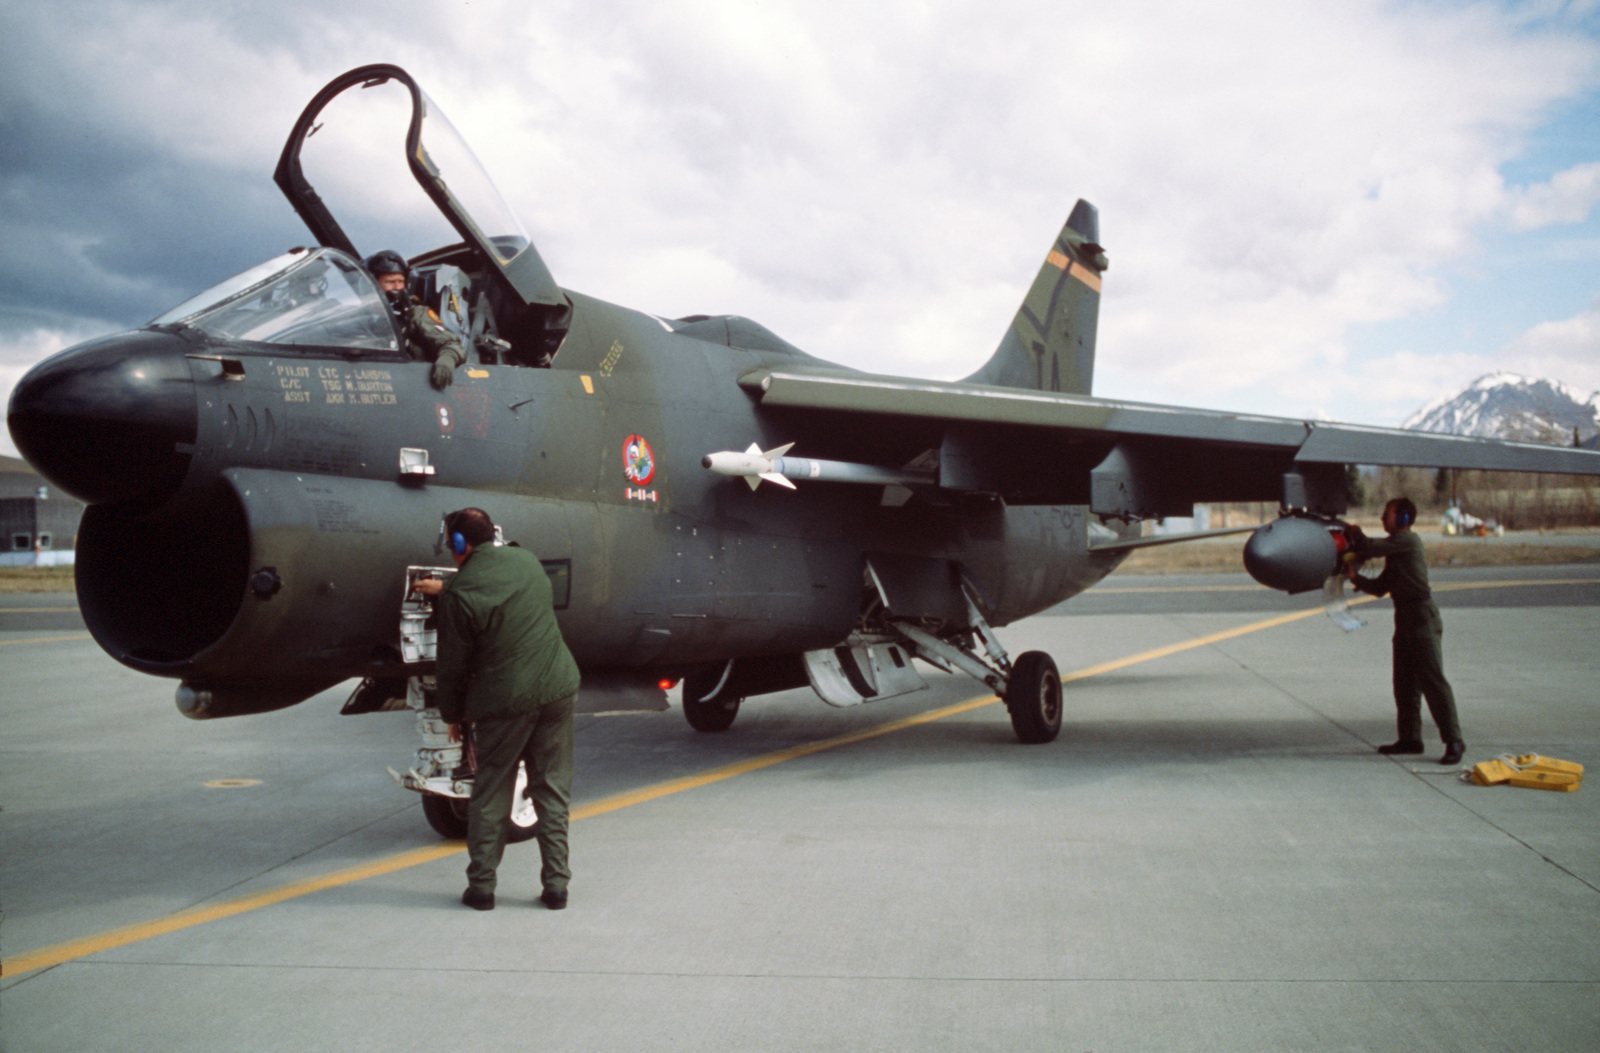 Maintenance technicians work on an A-7D Corsair II aircraft of the 132nd Tactical Fighter Group during Exercise AMALGAM BRAVE'87, an air defense training exercise.  The aircraft is armed with an AIM-9 Sidewinder missile on the fuselage